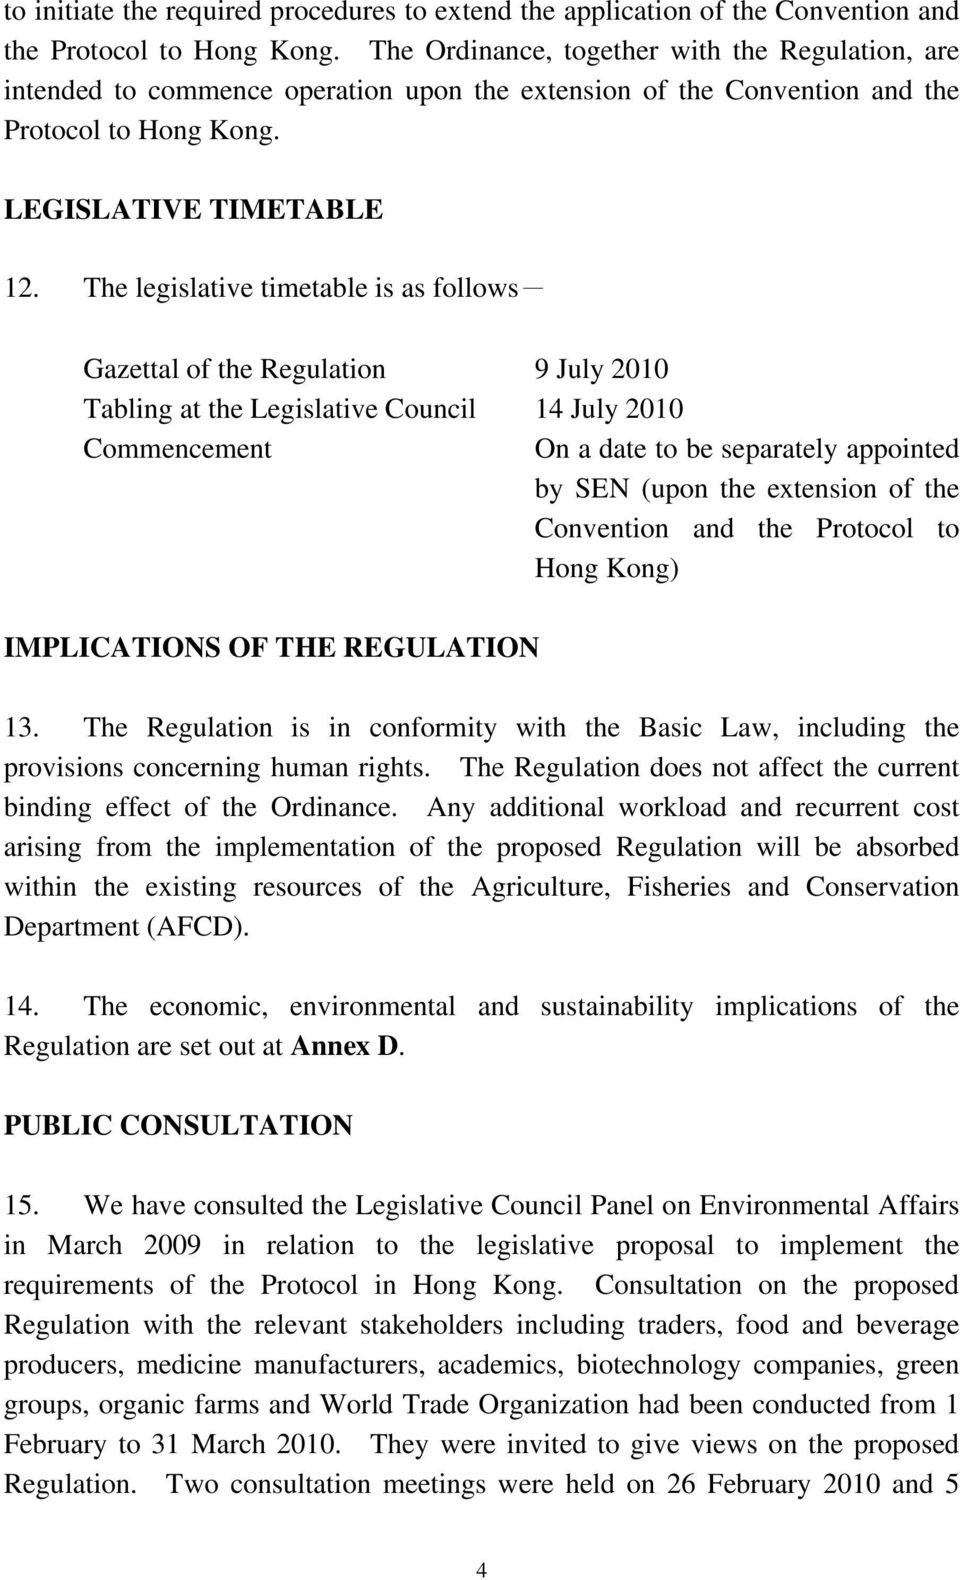 The legislative timetable is as follows- Gazettal of the Regulation 9 July 2010 Tabling at the Legislative Council 14 July 2010 Commencement On a date to be separately appointed by SEN (upon the